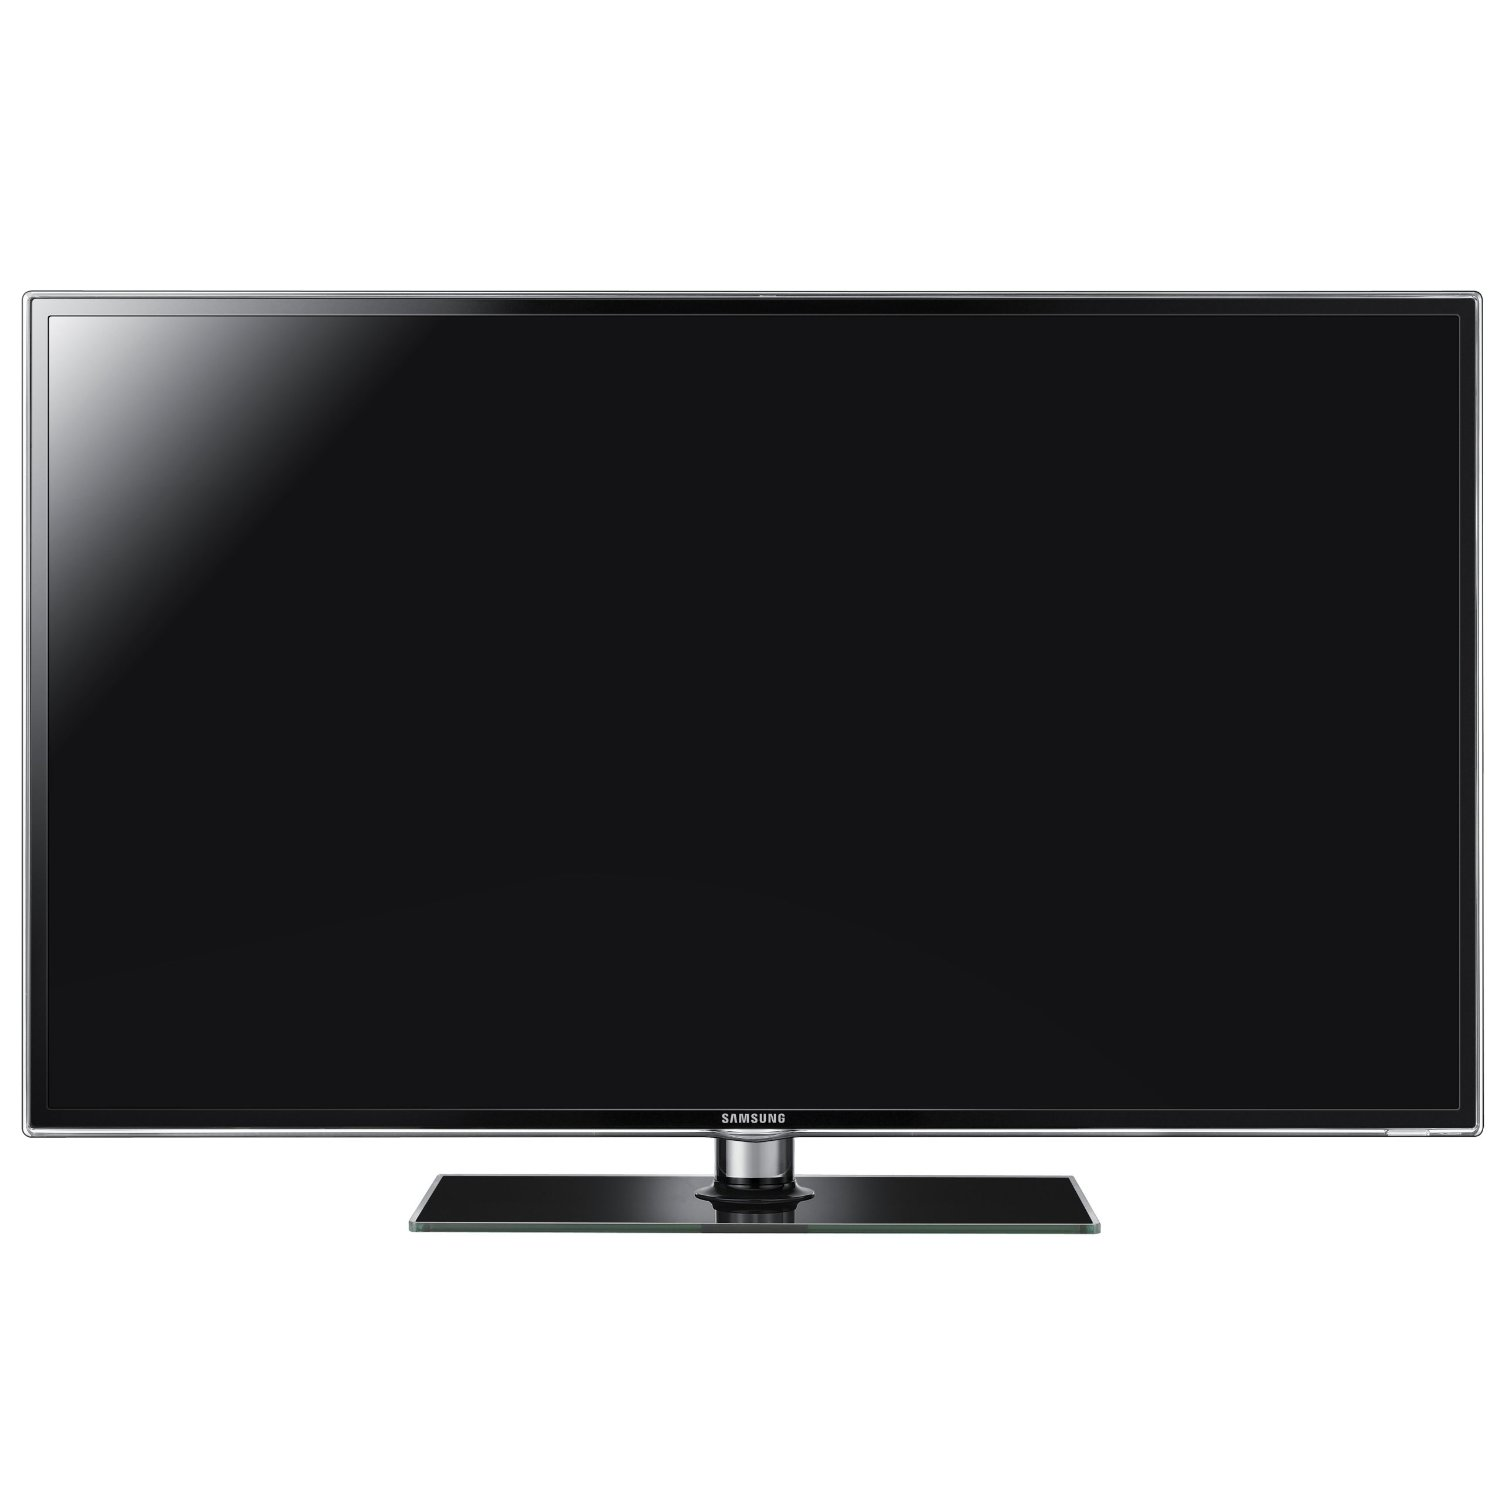 The Best Gaming Tv Lcd Tv Led Tv Plasma Tv And 3d Tv For ...